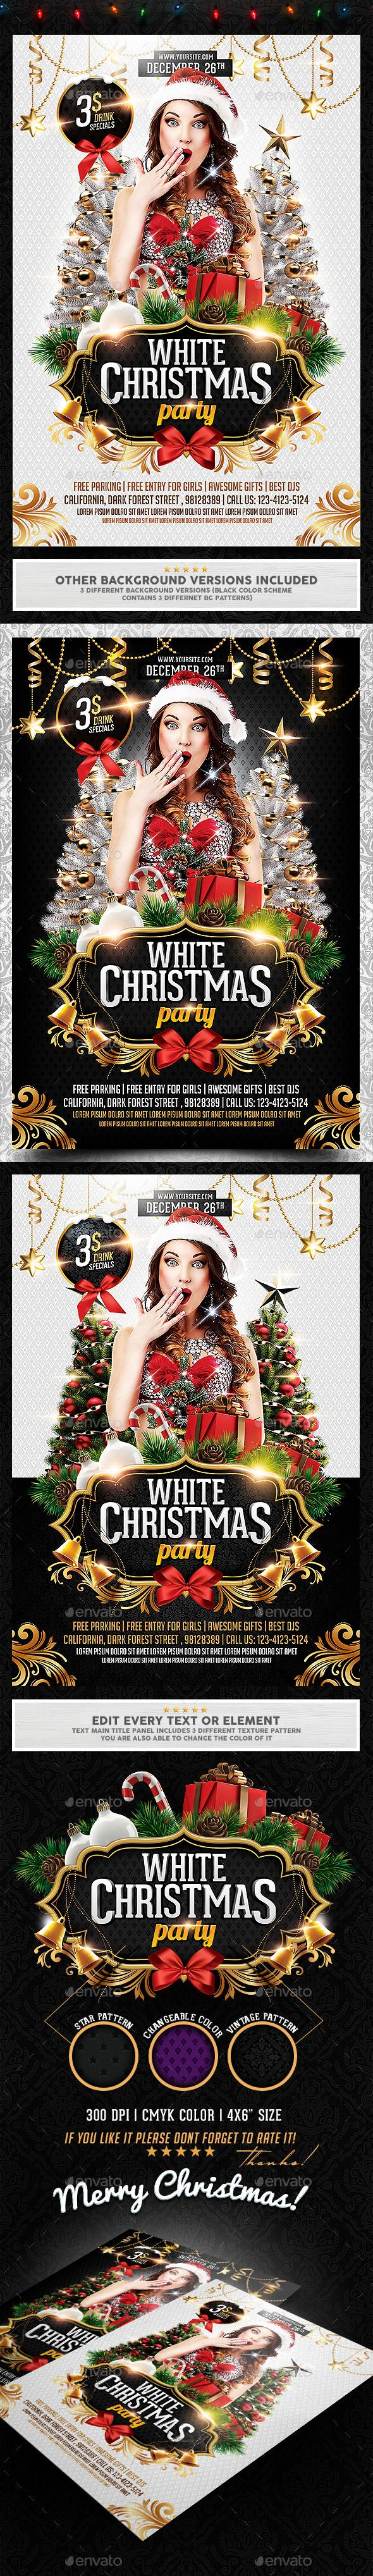 best images about merry christmas flyer template white christmas party flyer template psd design xmas